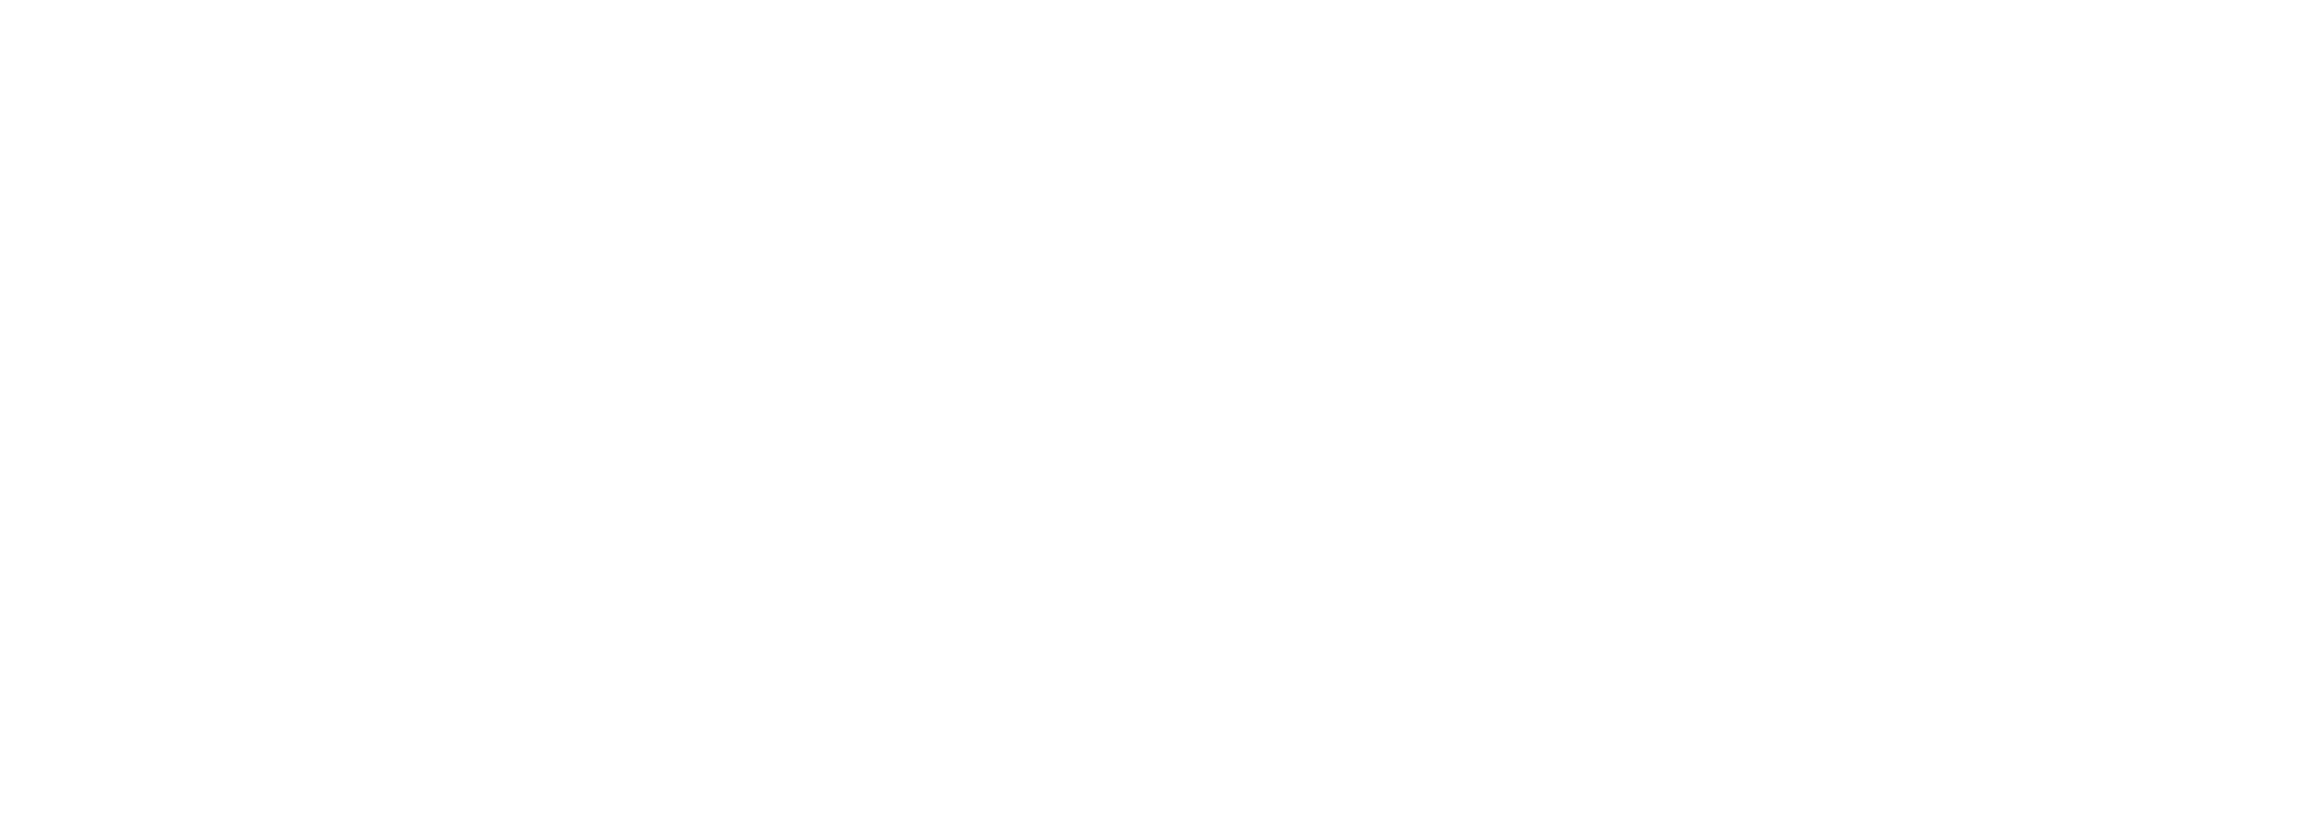 Apple Profile Manager